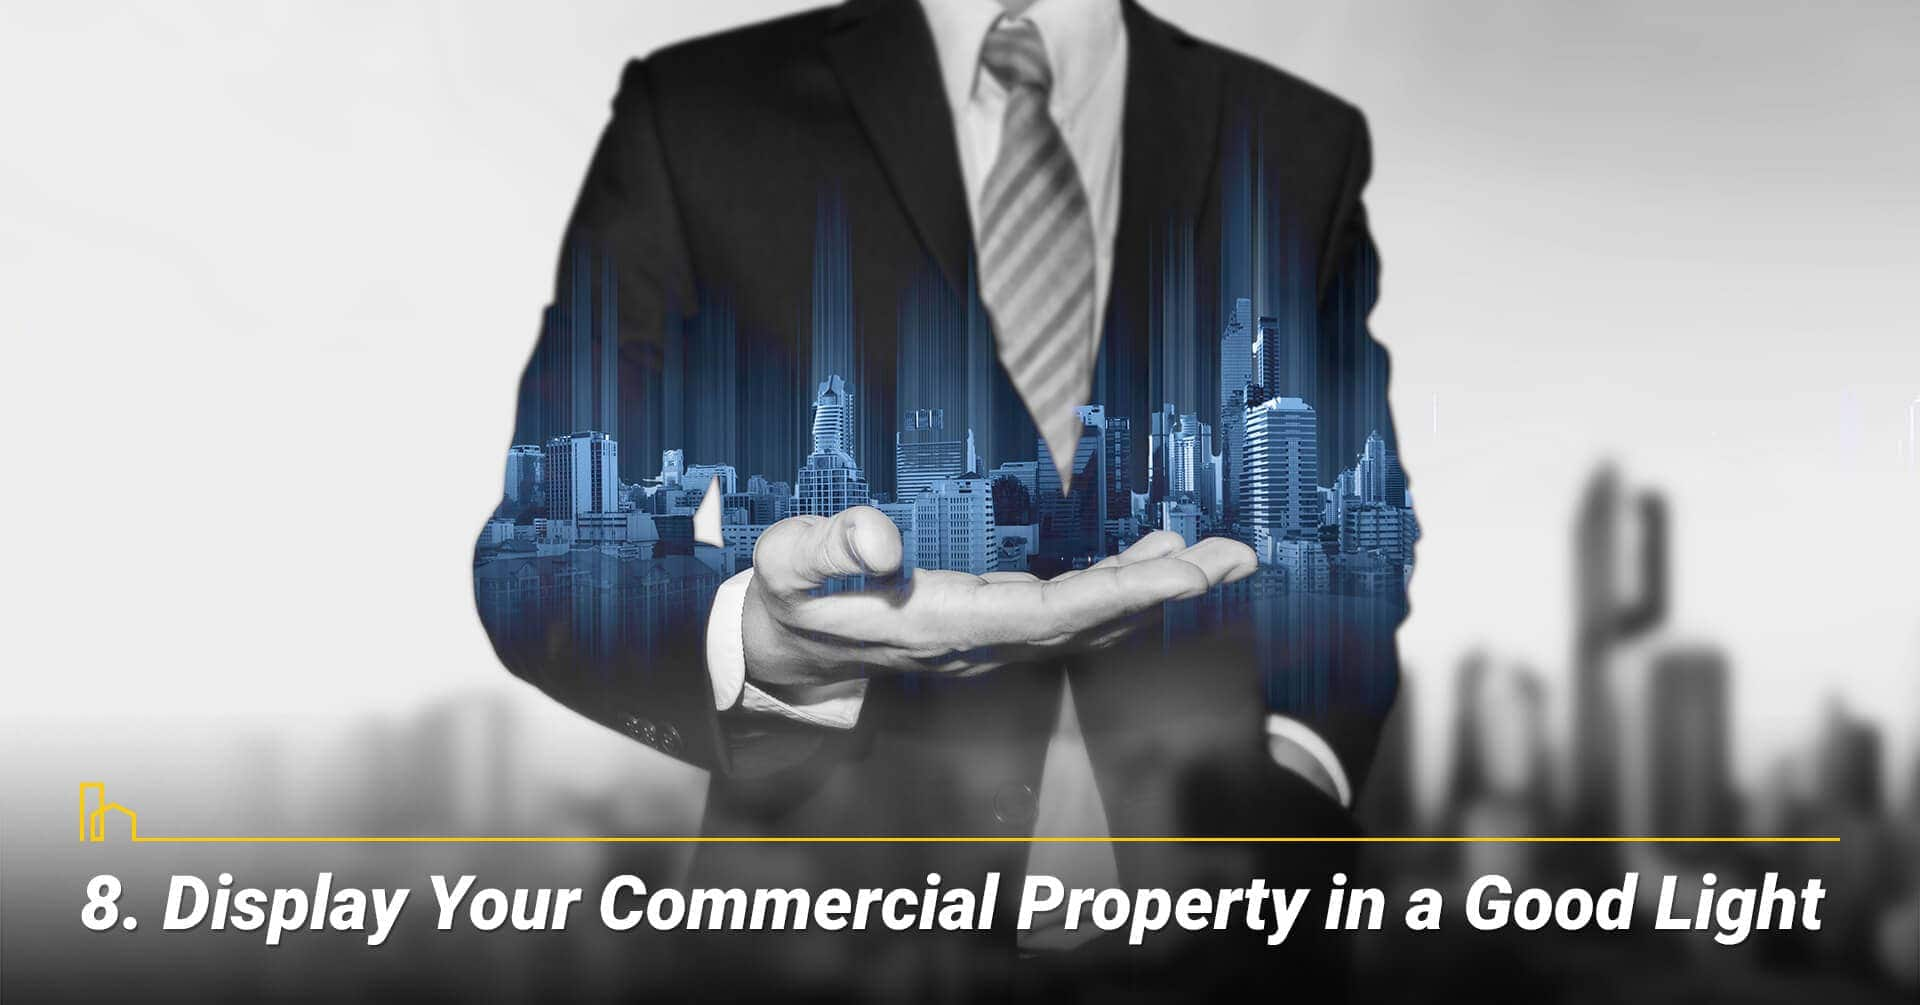 Display Your Commercial Property in a Good Light, bring your property's best images forward